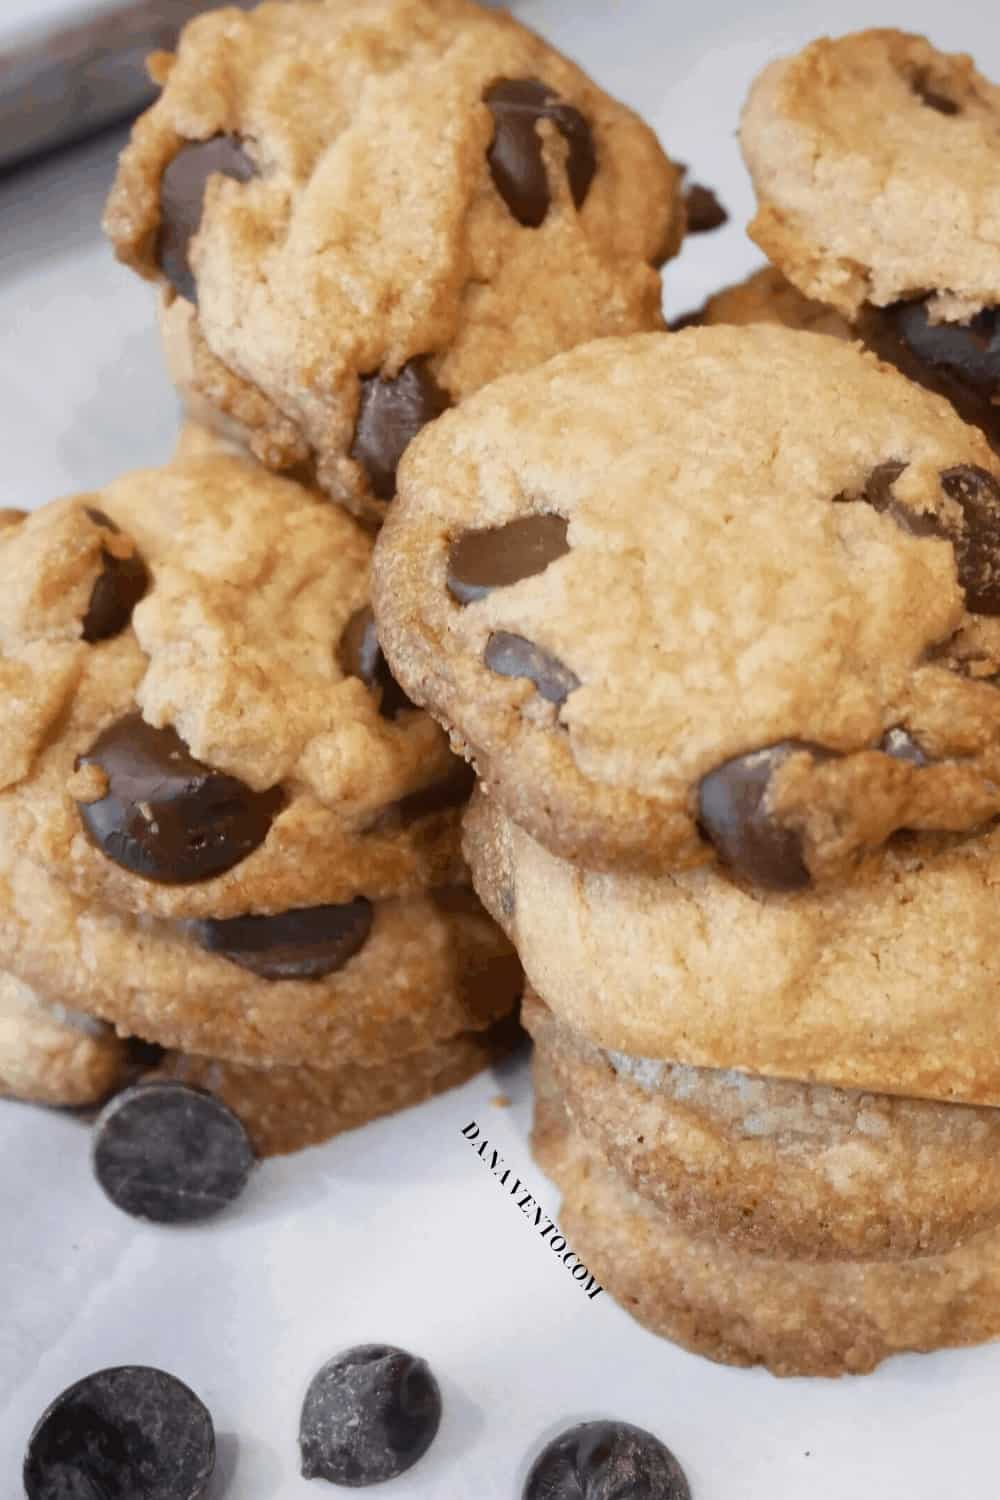 Chocolate chip cookies piled atop each other